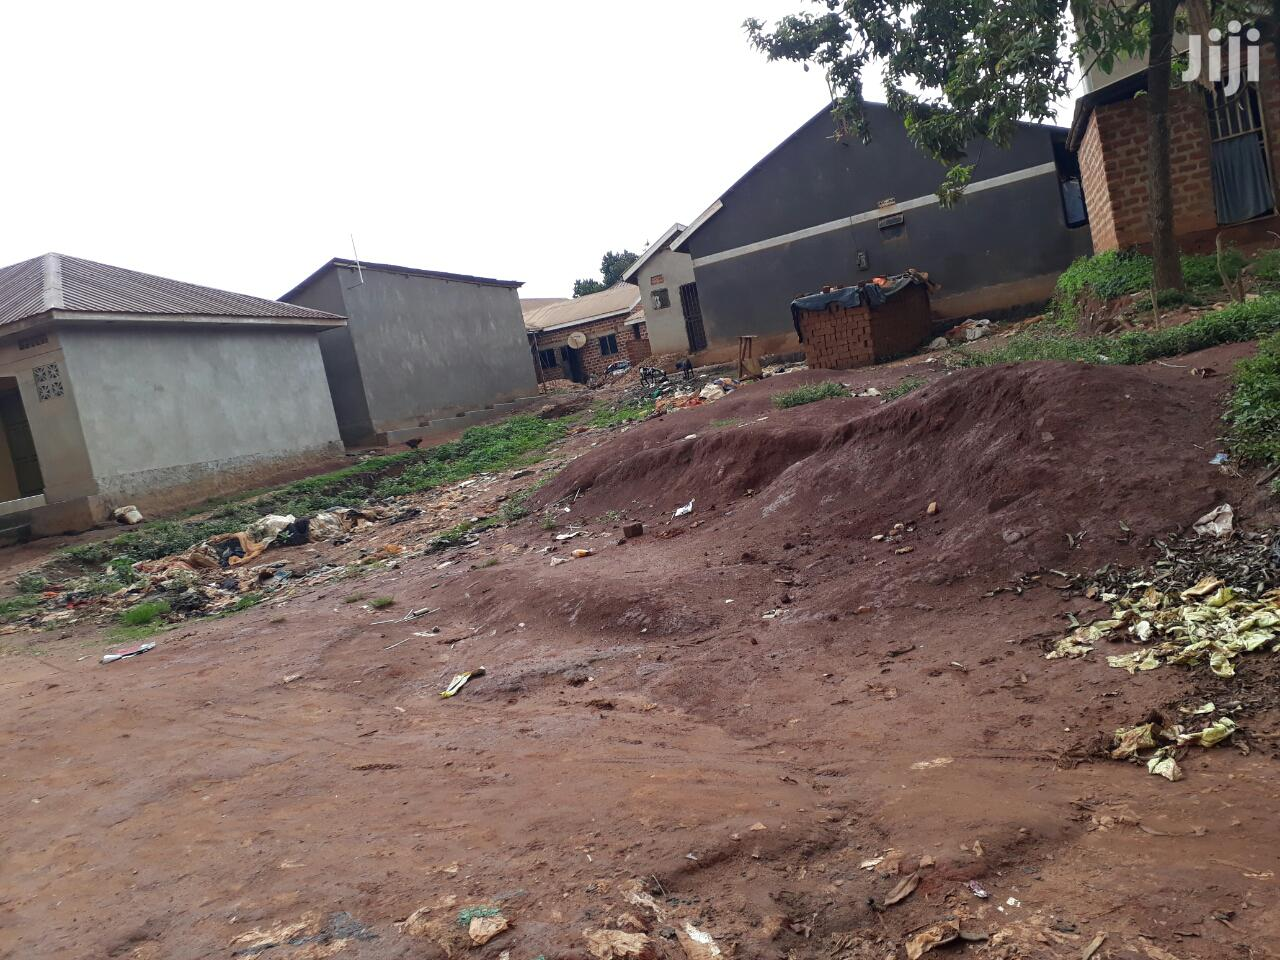 A Plot in Salaama Munyonyo Rd Kabuma Measuring 9 Decimals and Over | Land & Plots For Sale for sale in Kampala, Central Region, Uganda